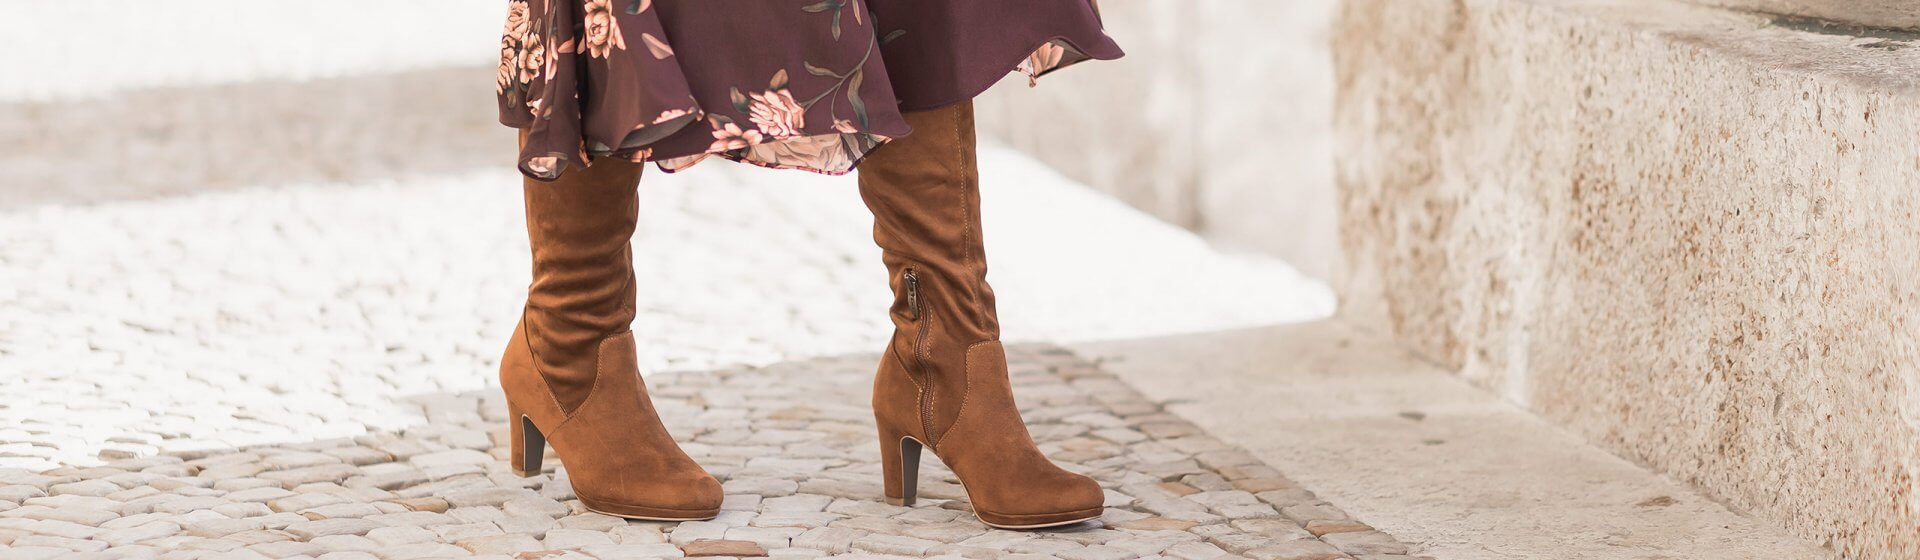 Stiefel Trends 2020, Wildlederstiefel, Shoelove by Deichmann